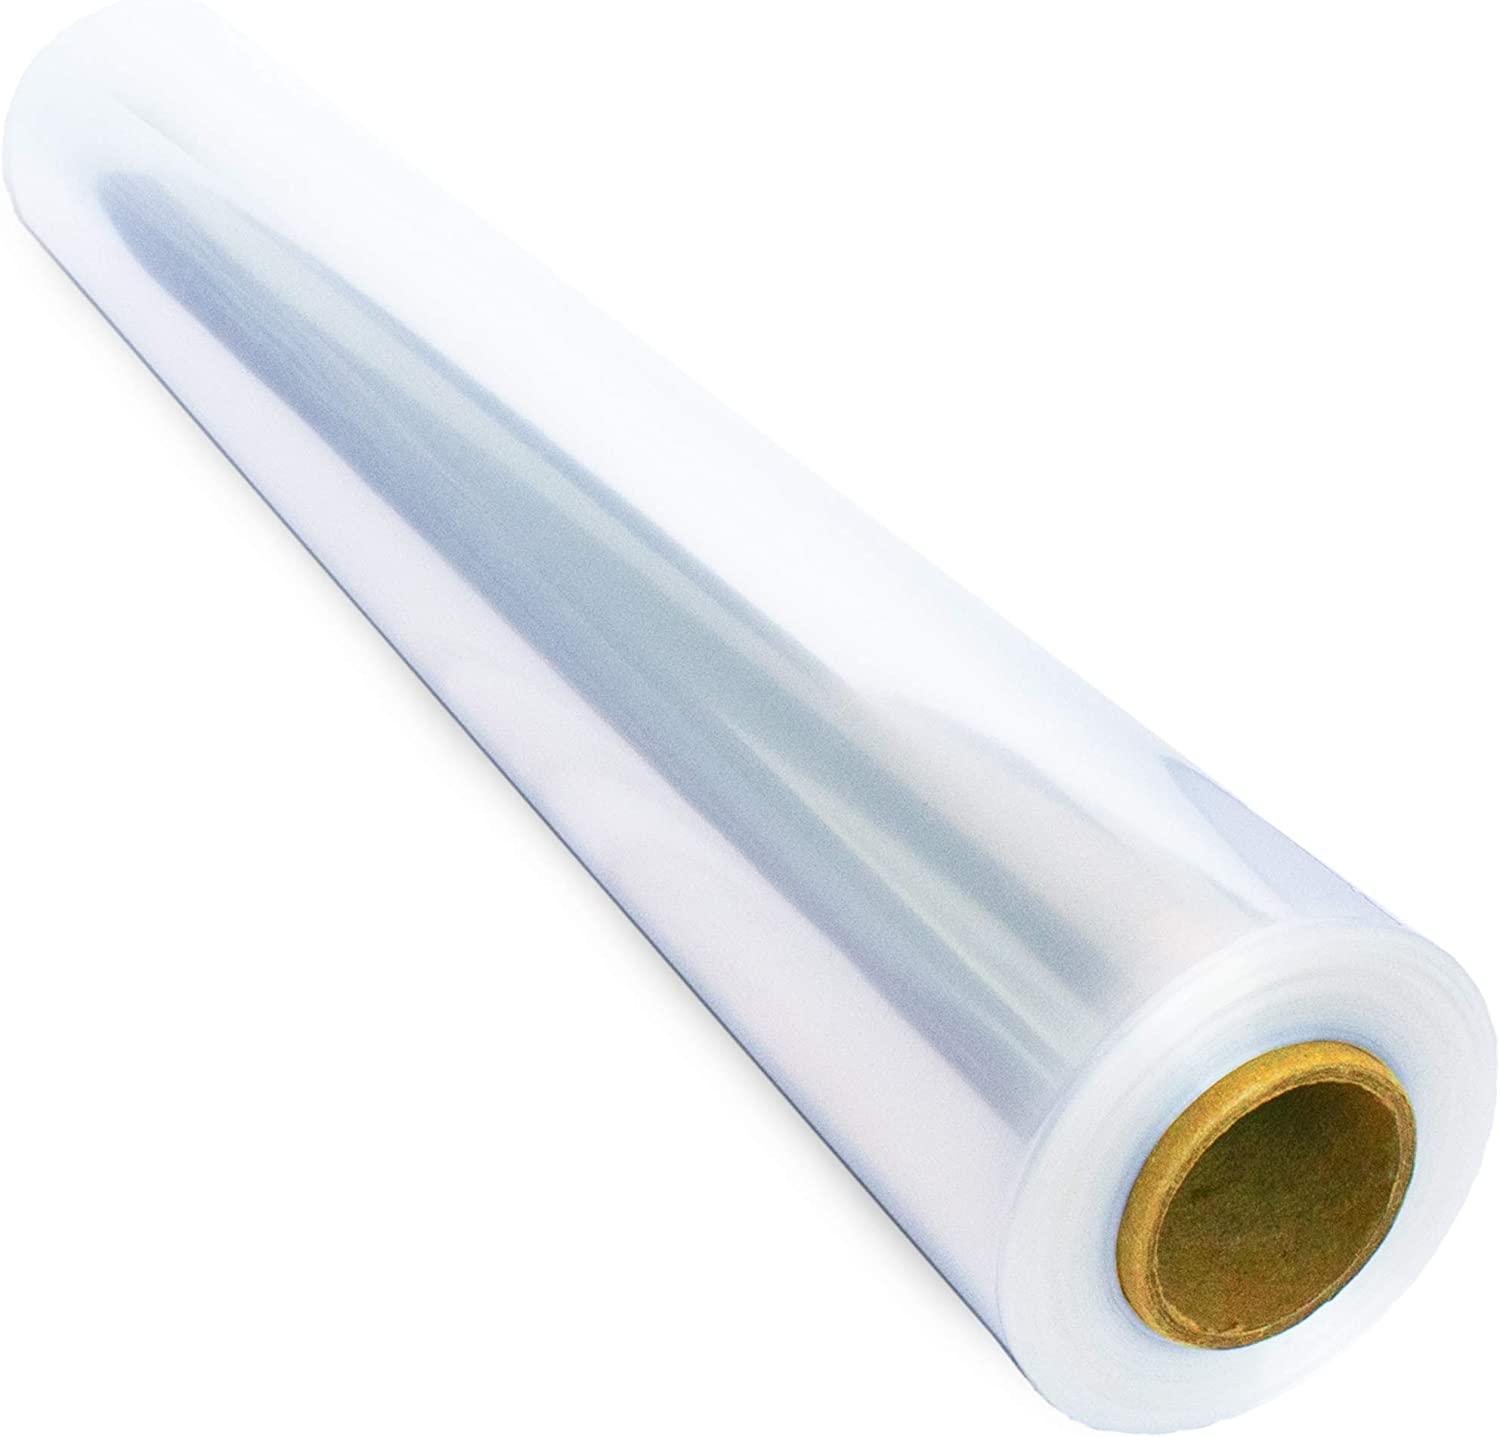 110 ft Clear Cellophane Wrap Roll (31.5 in x 110 ft) - Cellophane Roll - Clear Wrap Cellophane Bags - Clear Wrapping Paper to Wrap Gift Baskets - Clear Gift Wrap - Celophane Basket Wrap - Cello Wrap